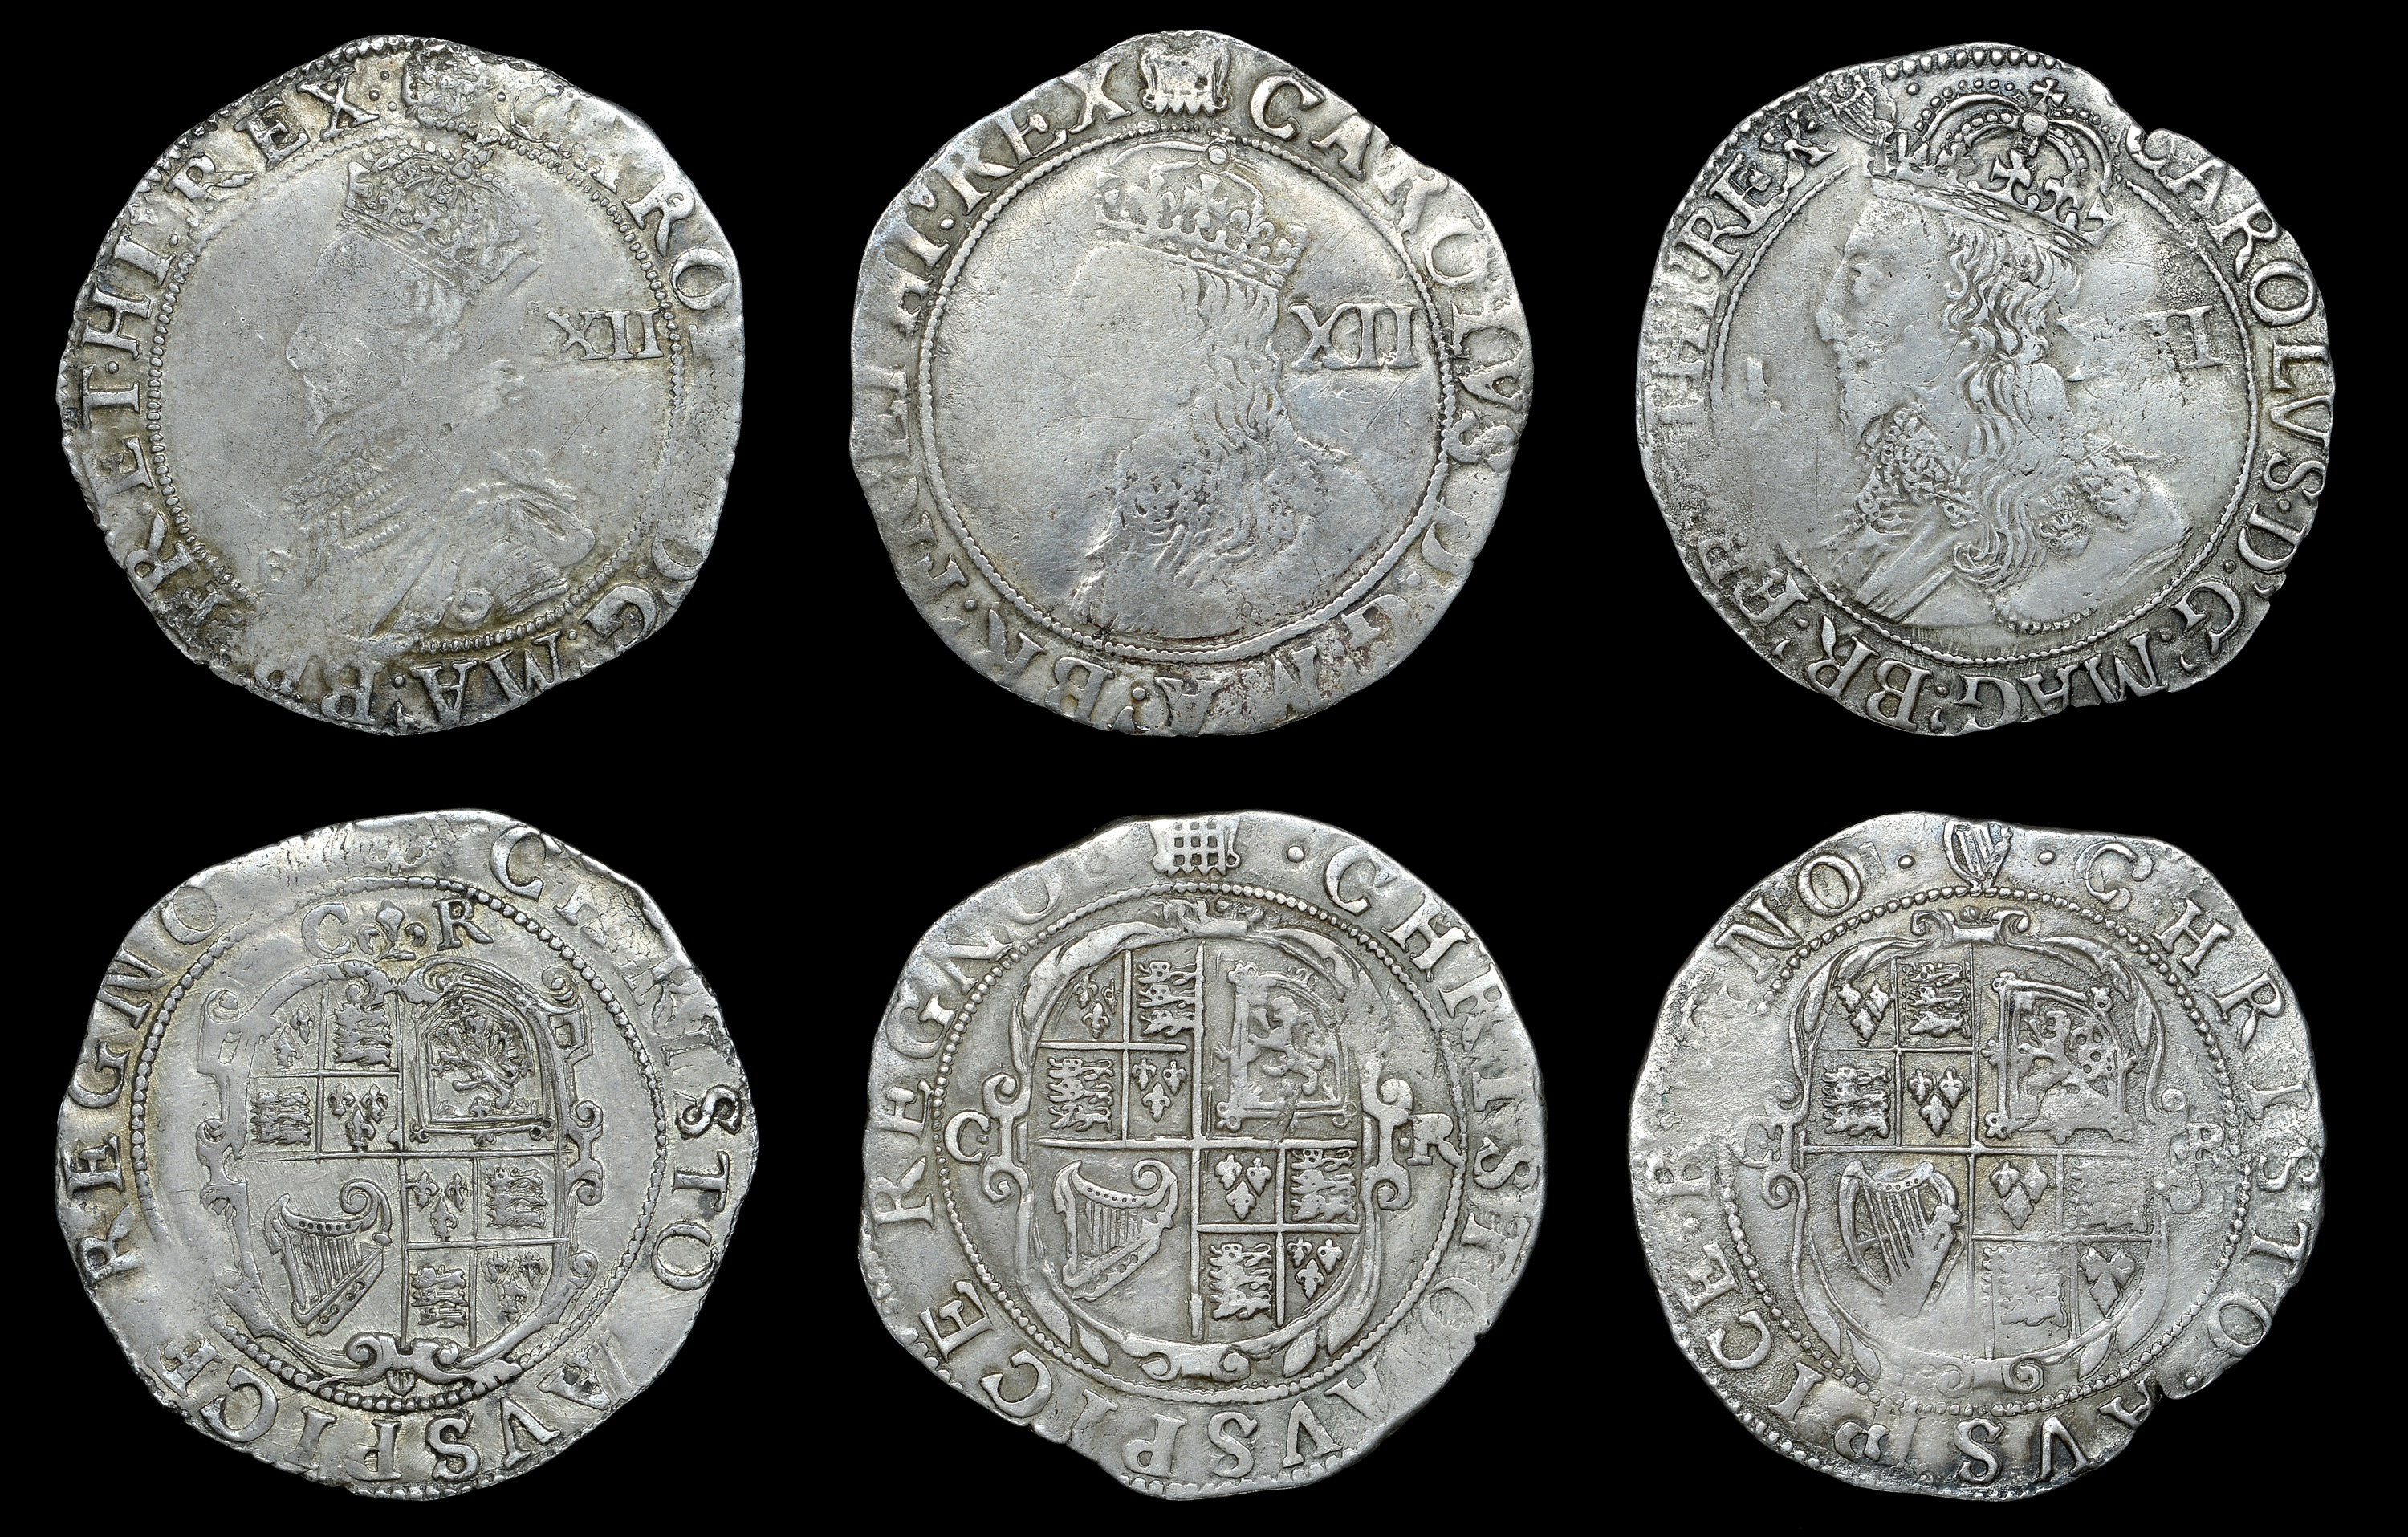 Lot 23 - The Collection of British Coins Formed by the Late Ray Inder (Part IV)